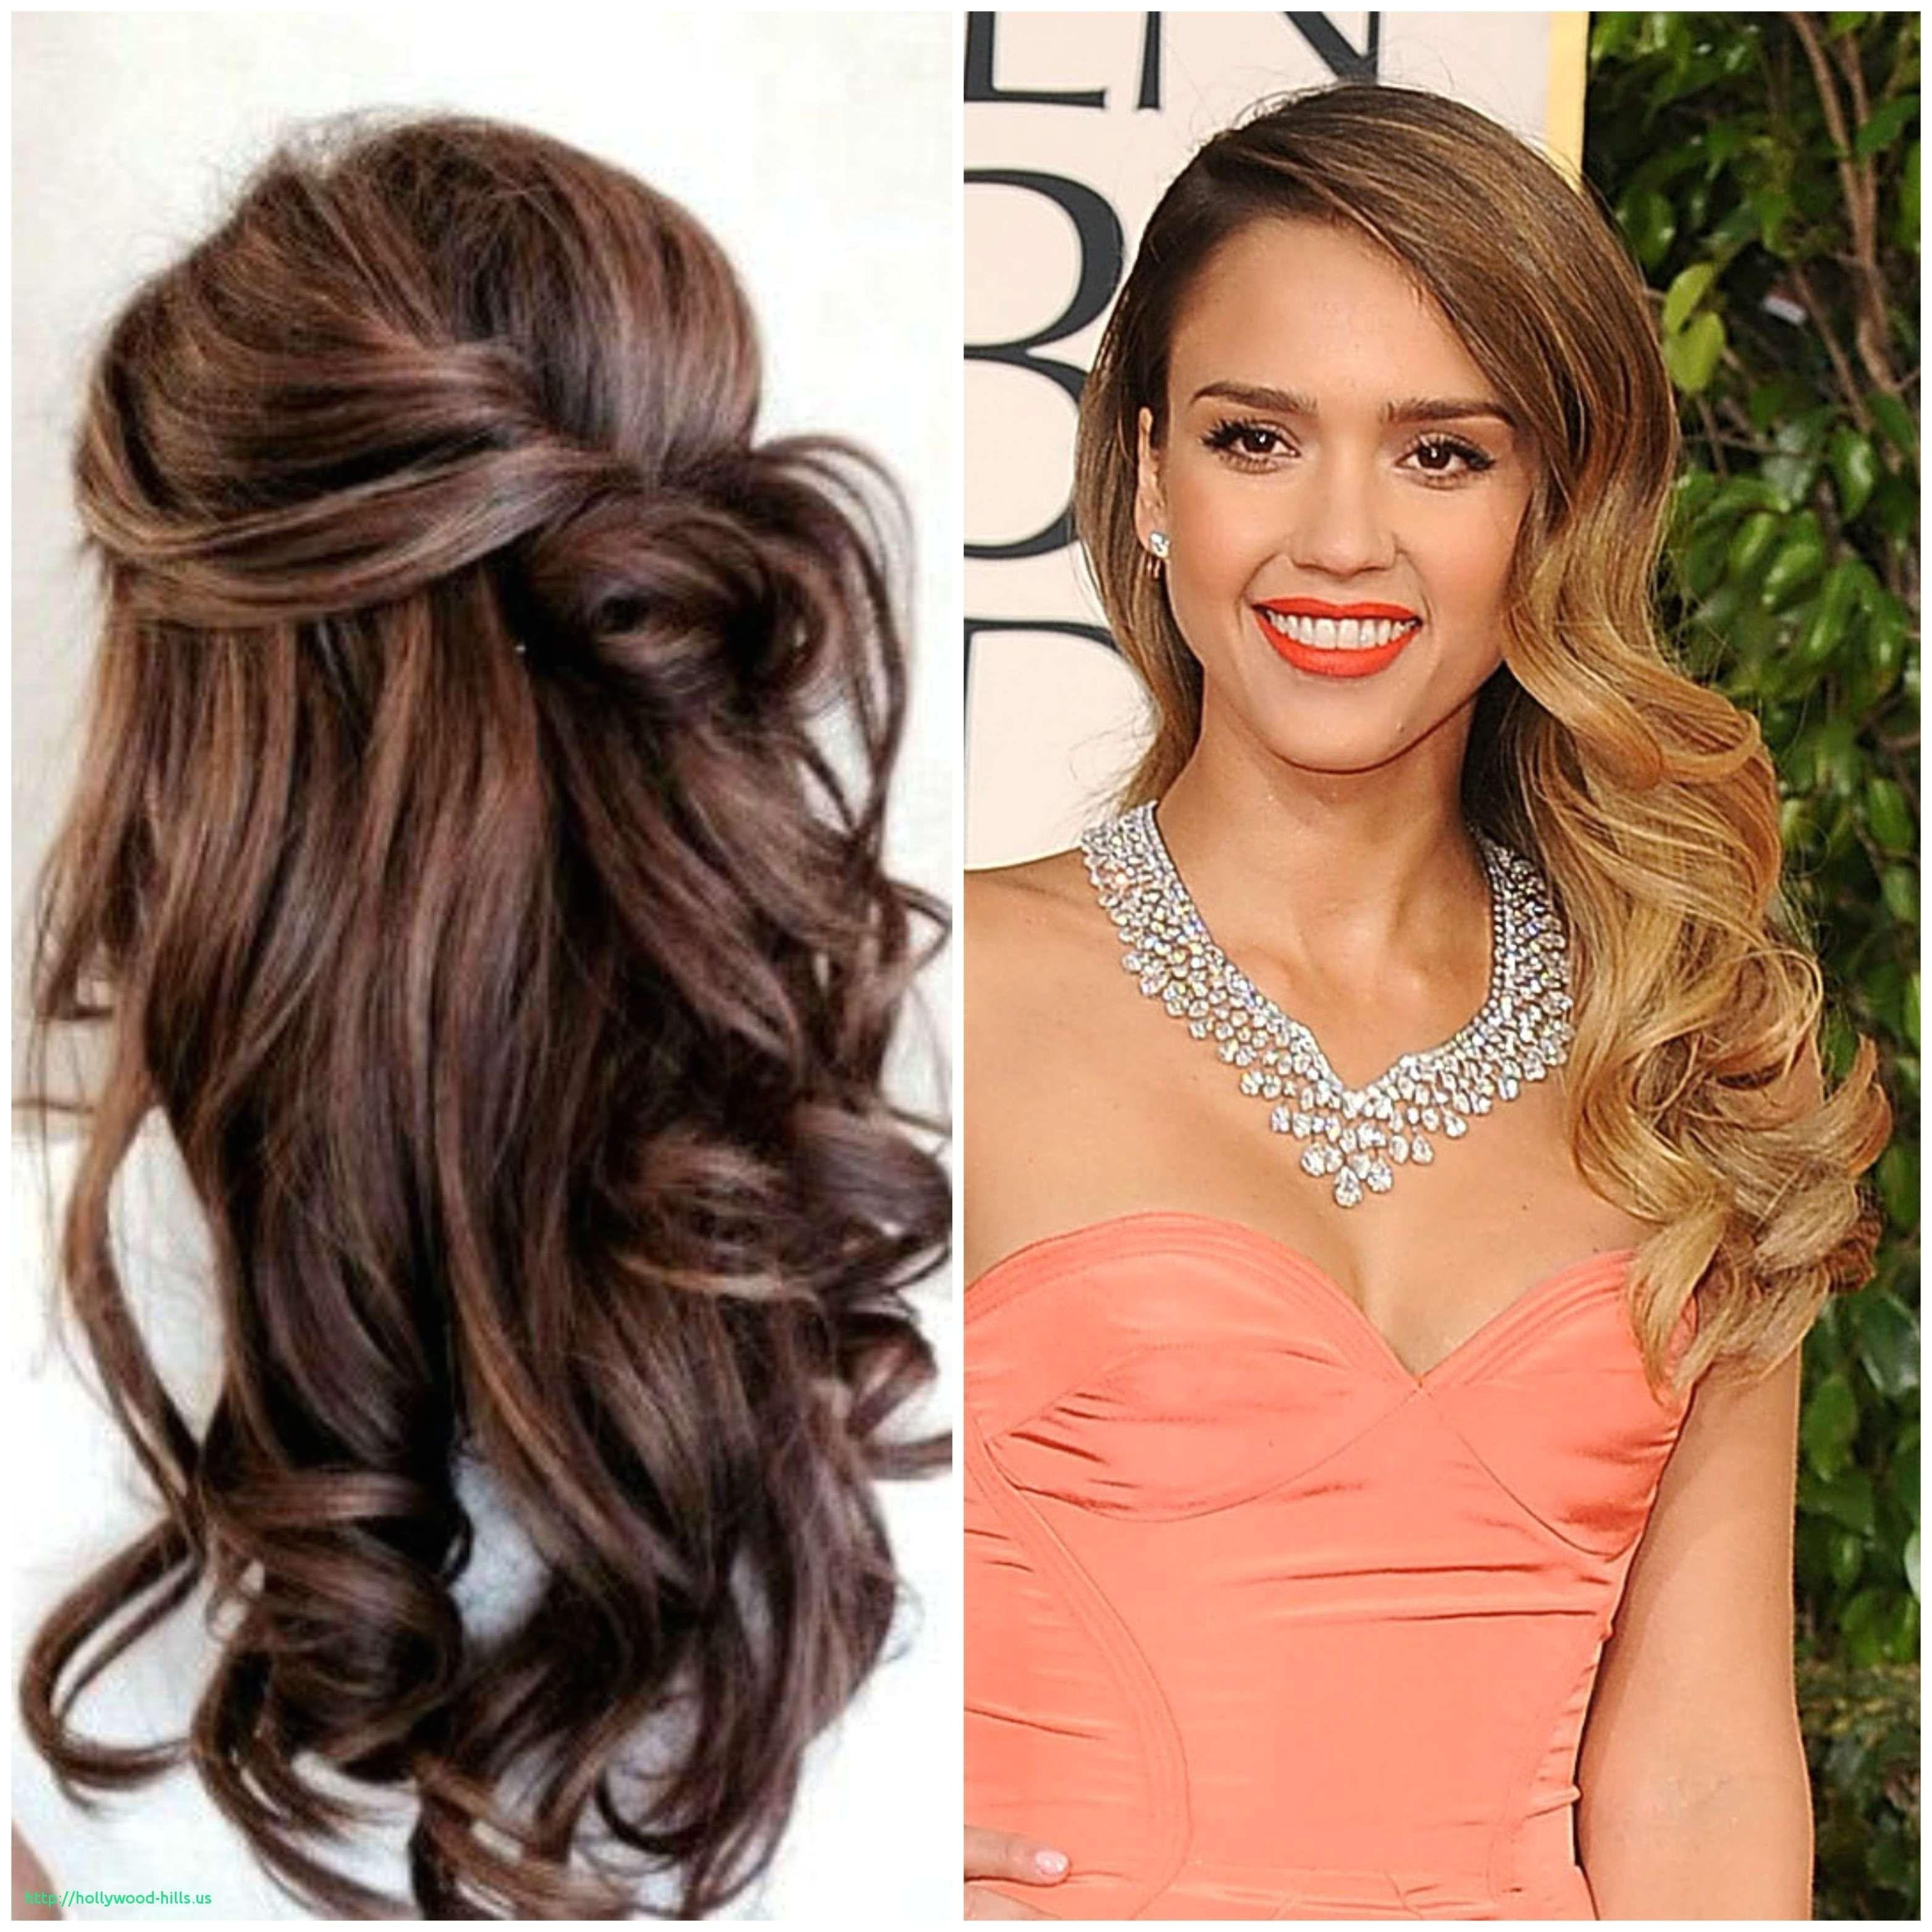 Best Popular Haircuts for Women 2016 Inspiration